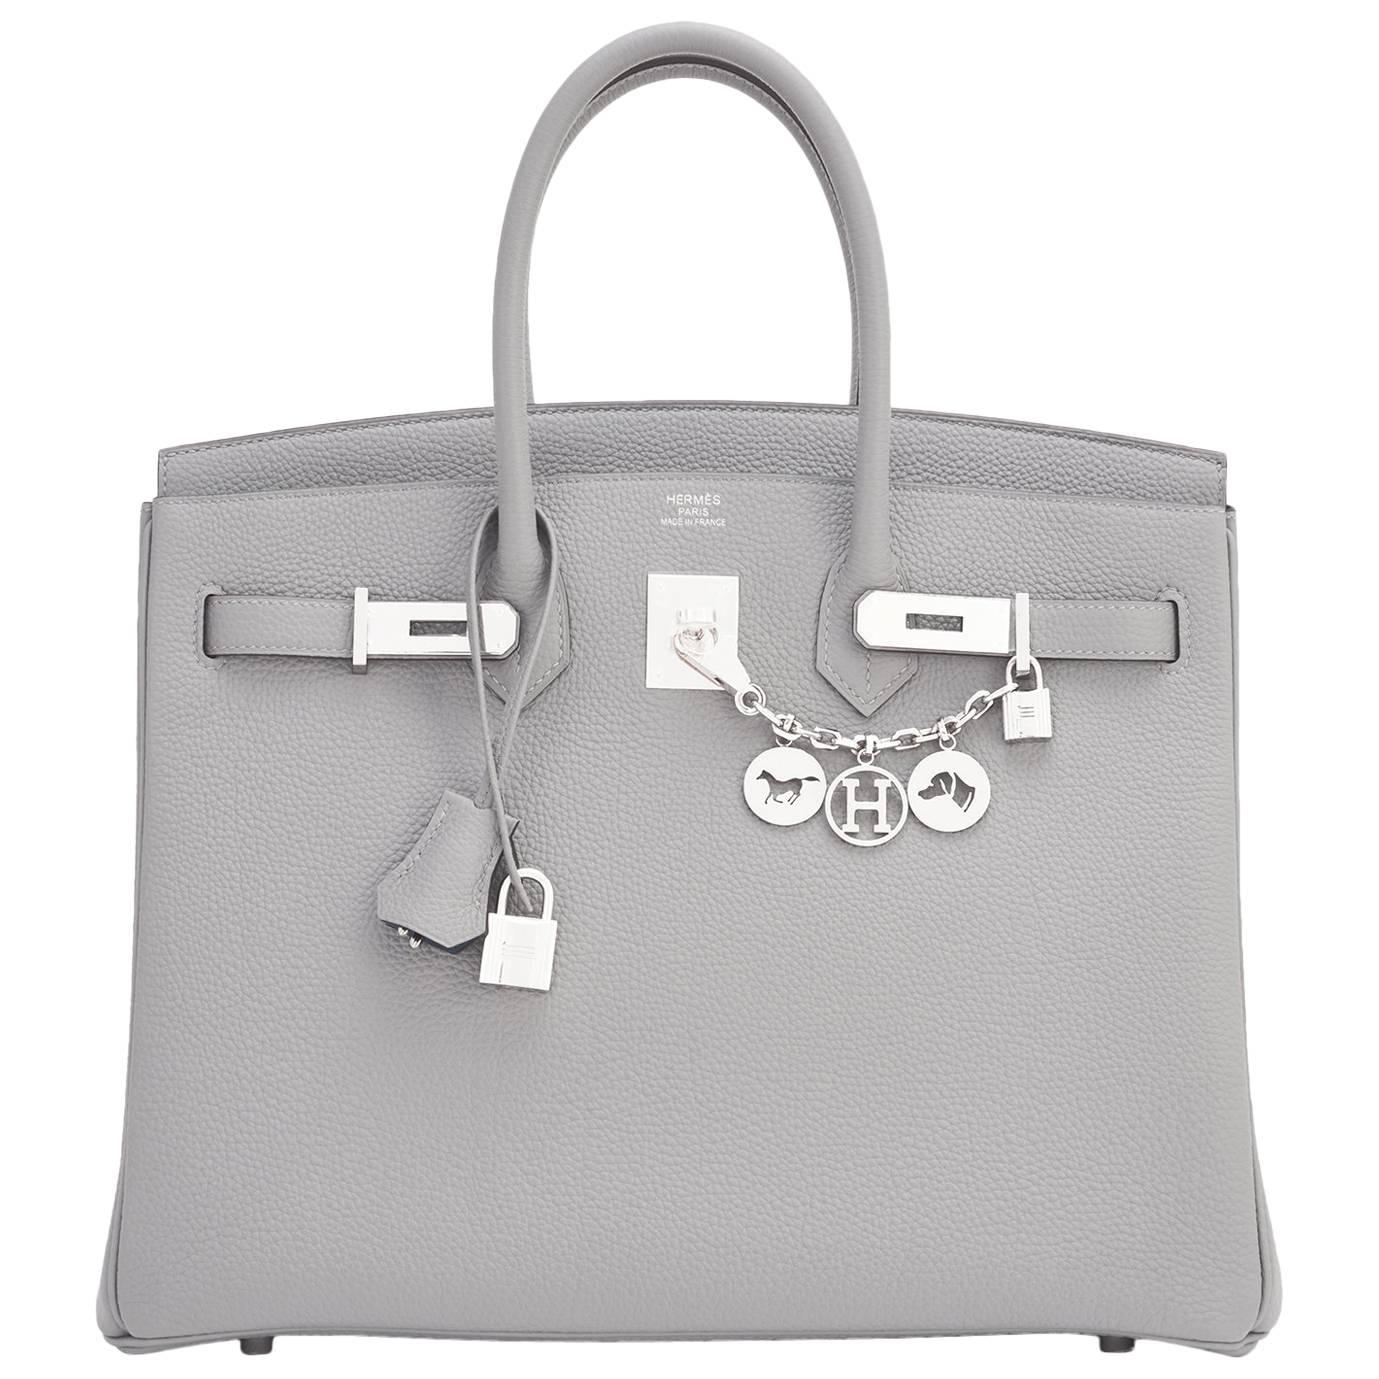 499be2460fc9 Hermes Birkin Bags - 922 For Sale on 1stdibs